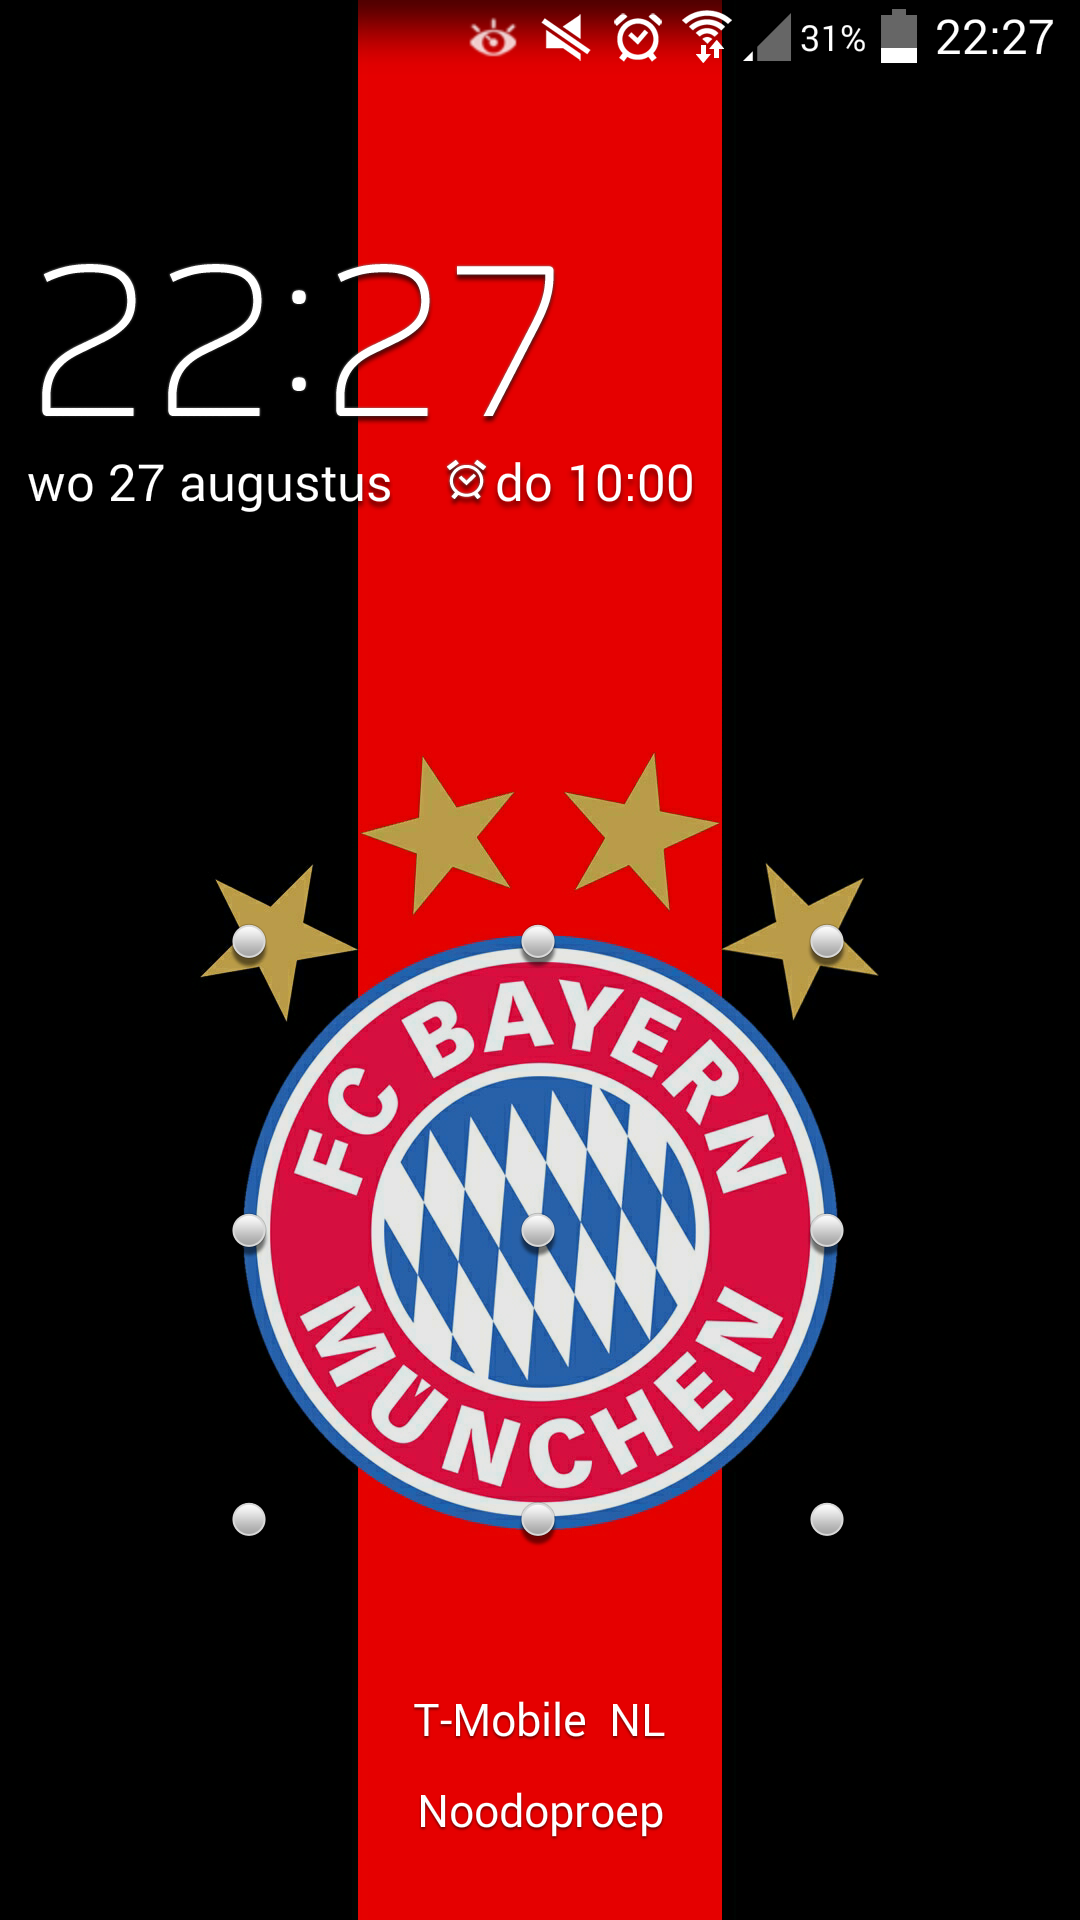 Free Download Funmozar Bayern Munich Iphone Wallpapers 1080x1920 For Your Desktop Mobile Tablet Explore 45 Bayern Munich Iphone Wallpaper Bayern Munich Logo Wallpaper Bayern Munchen Wallpaper For Android Bayern Munchen Wallpaper